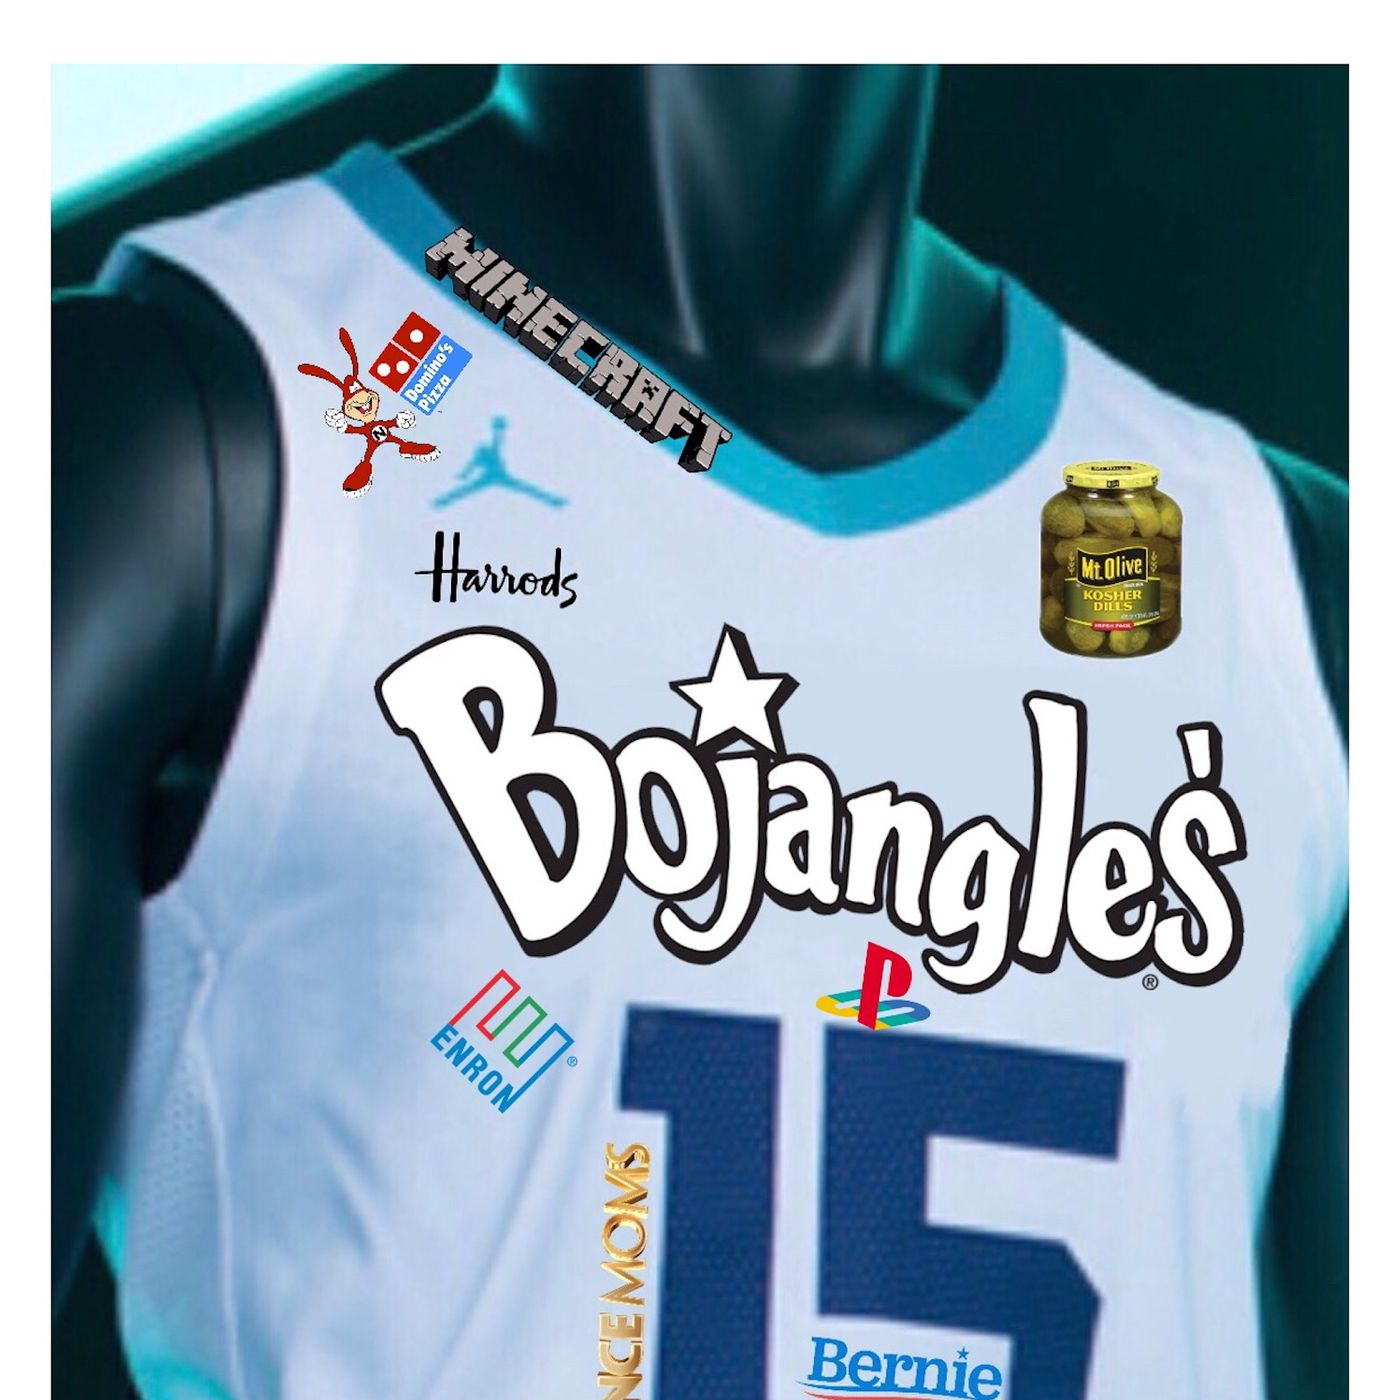 reputable site b5819 b224b These logos won't end up on the Hornets jerseys, but they ...